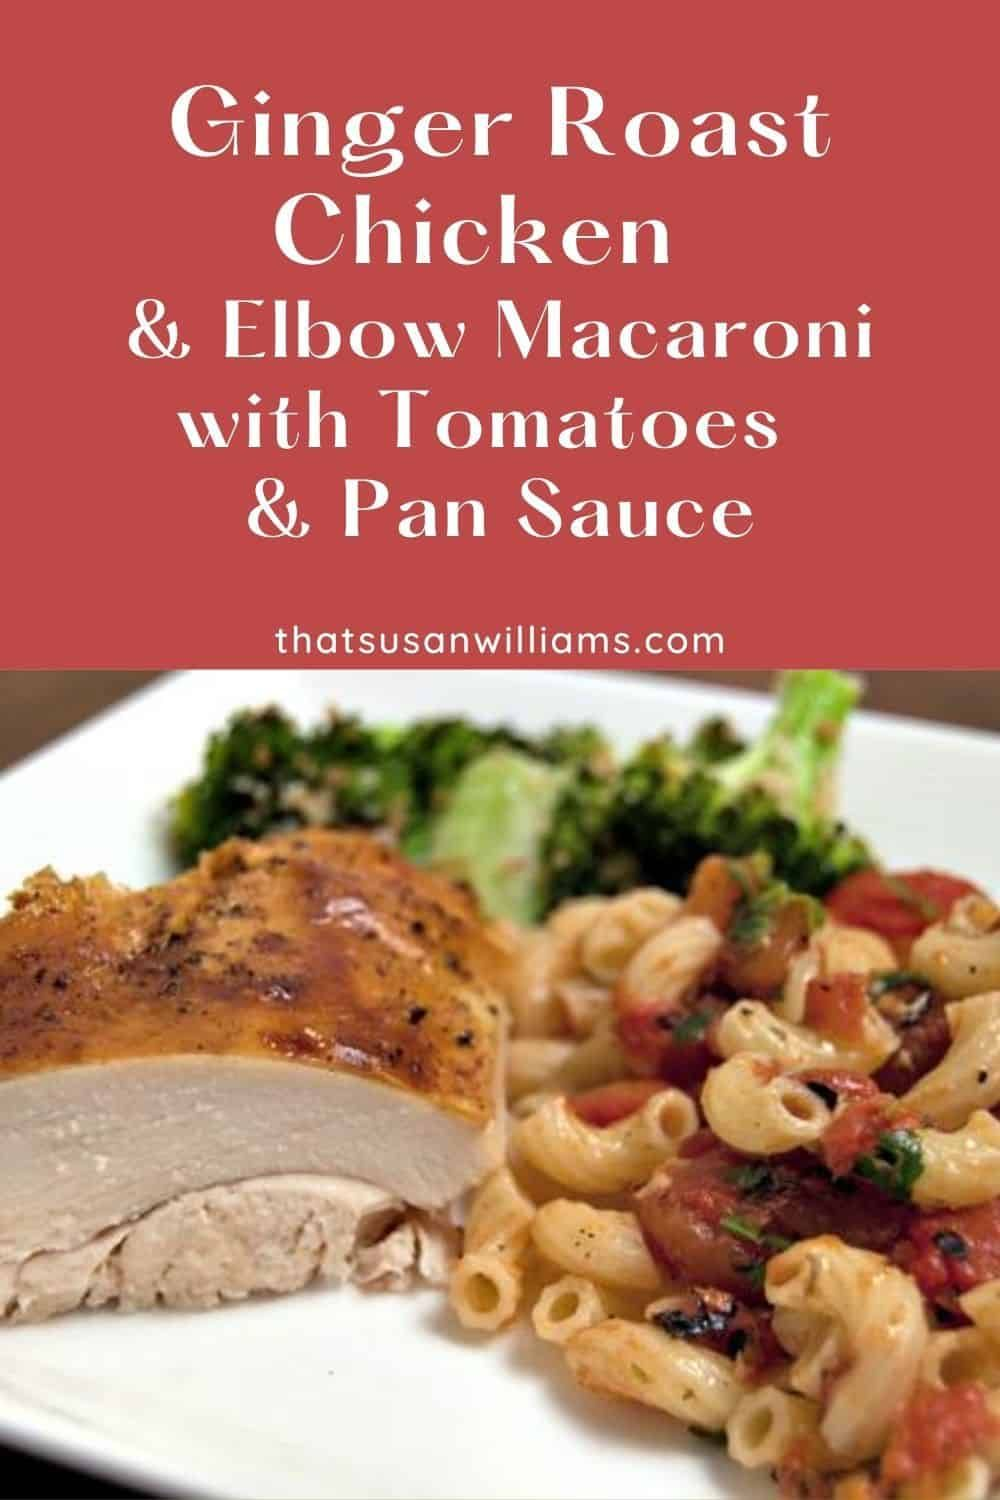 Ginger Roast Chicken And Elbow Macaroni With Tomatoes And Pan Sauce The Delicious Flavors I In 2020 Chicken Dishes Recipes Chicken Dinner Recipes Easy Cooking Recipes